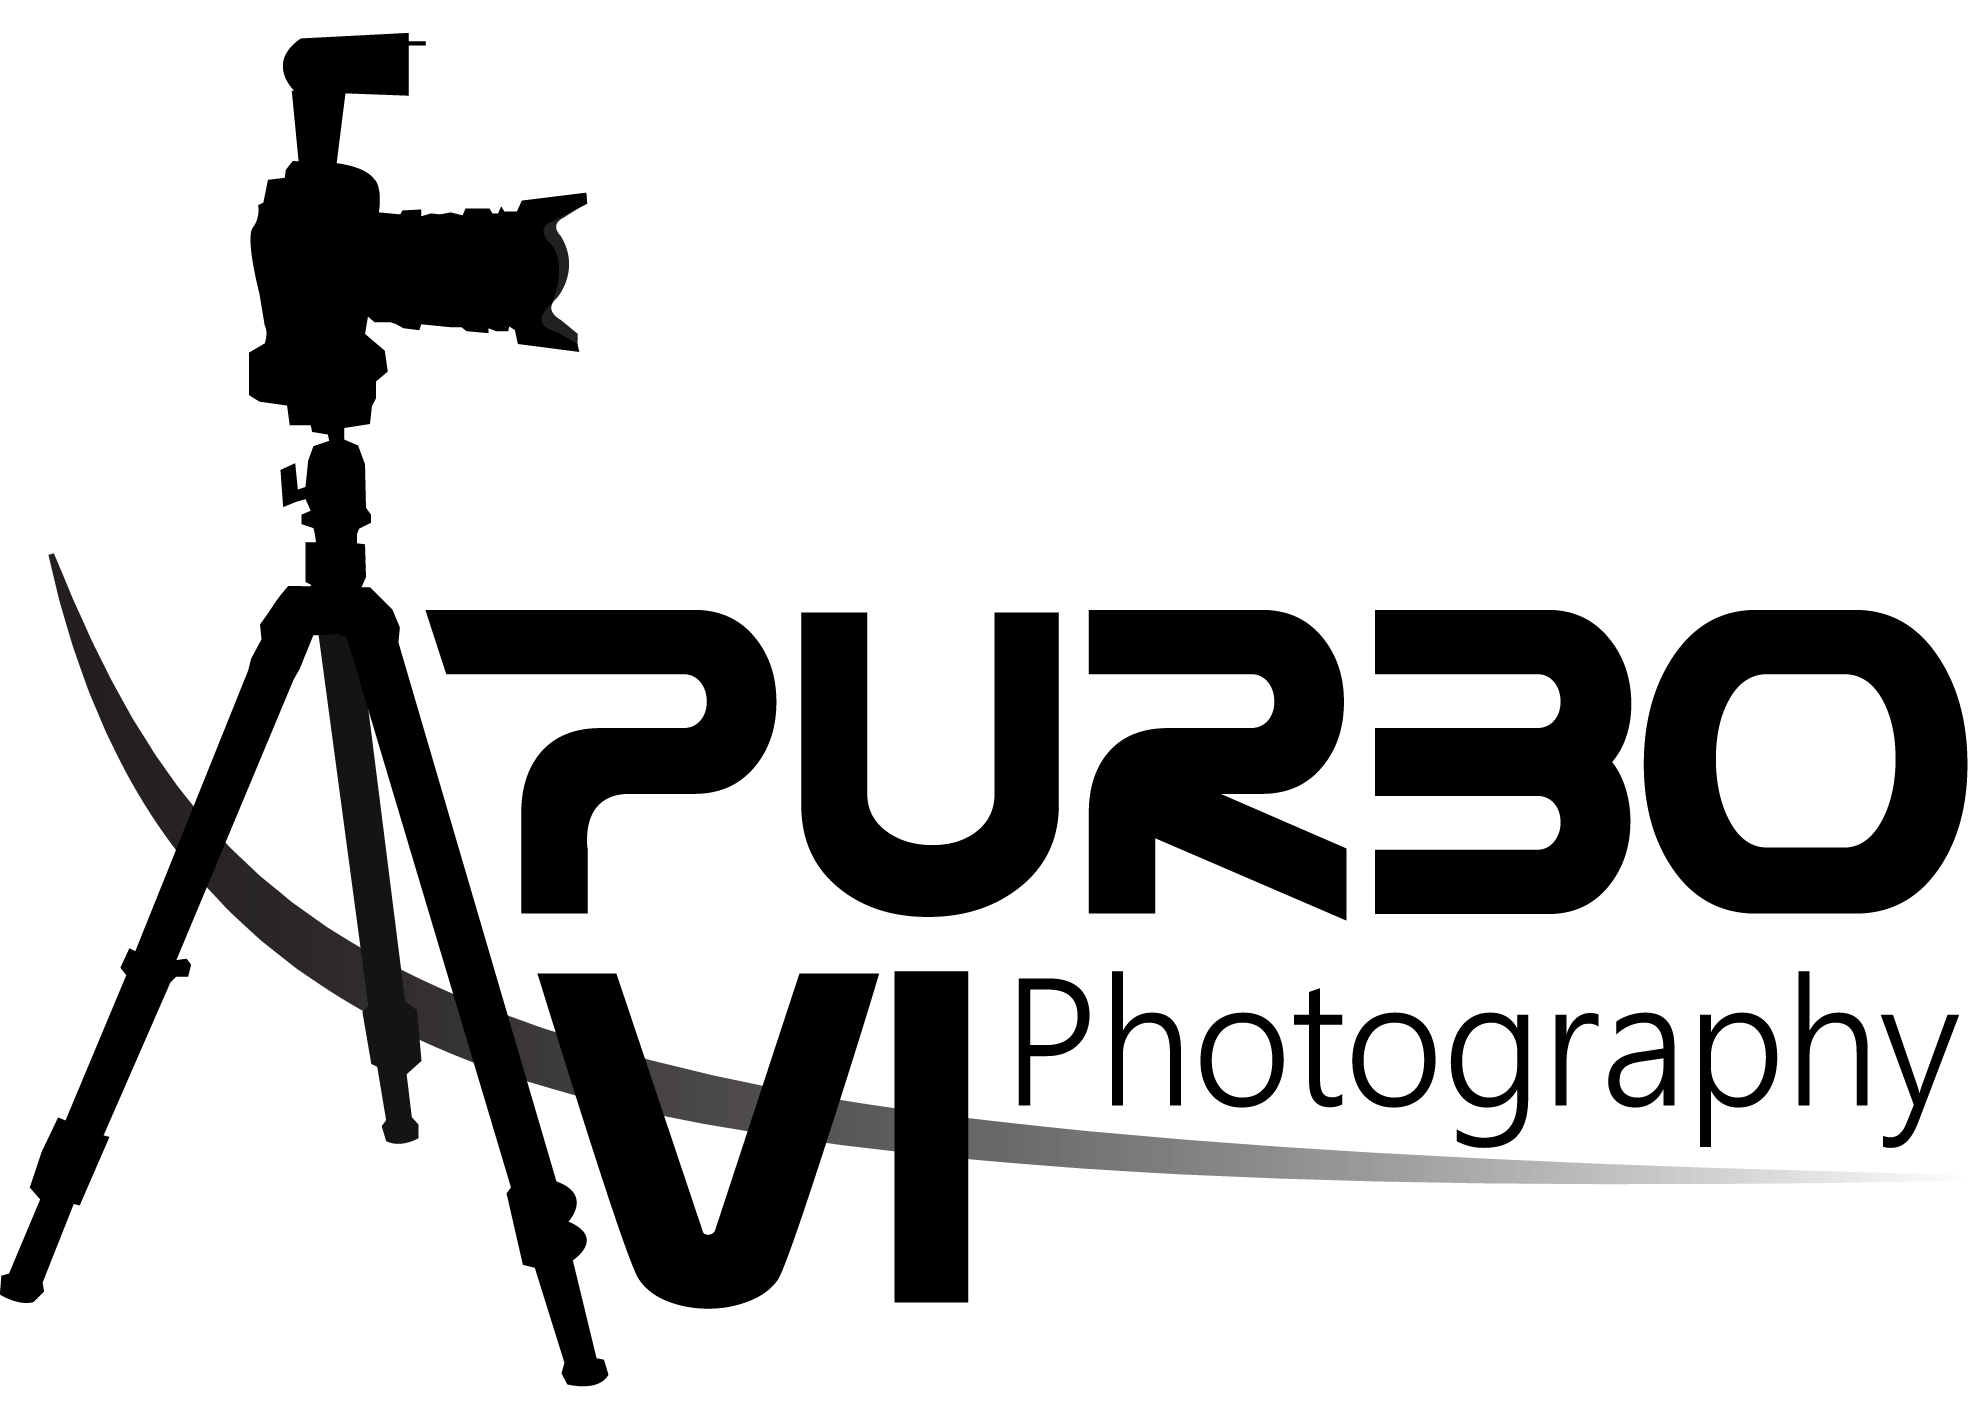 Png logo photography. Portfolio apurbo avi